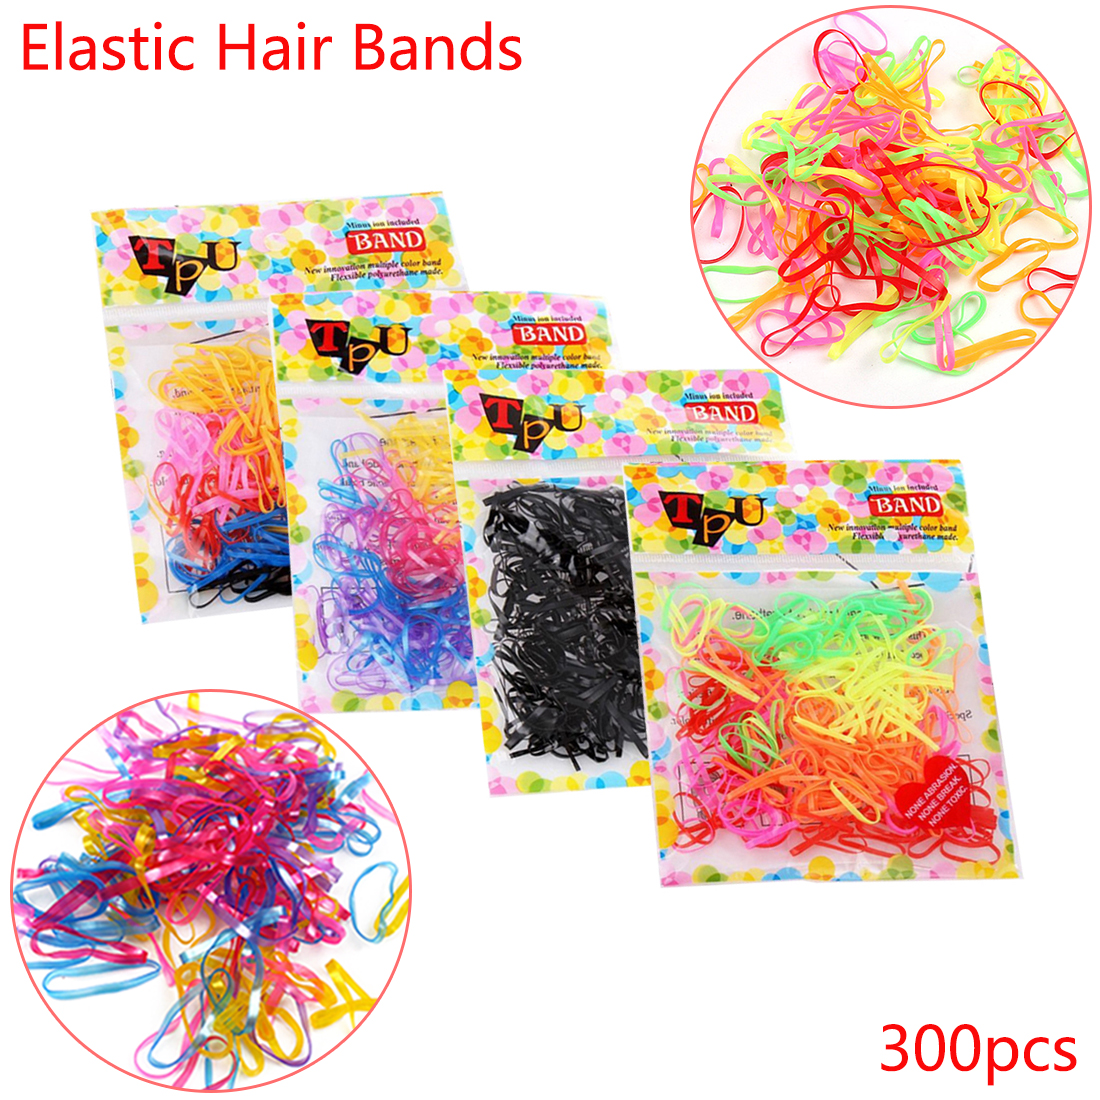 Colorful 300pcs/lot 3cm Headwear Hair Ropes Tie Gum Ponytail Holder Disposable Elastic Hair Bands Hair Accessories for Girls 300 400pcs lot candy color elastic hair bands headwear hair ring ropes ponytail holder one off for girls hair accessories